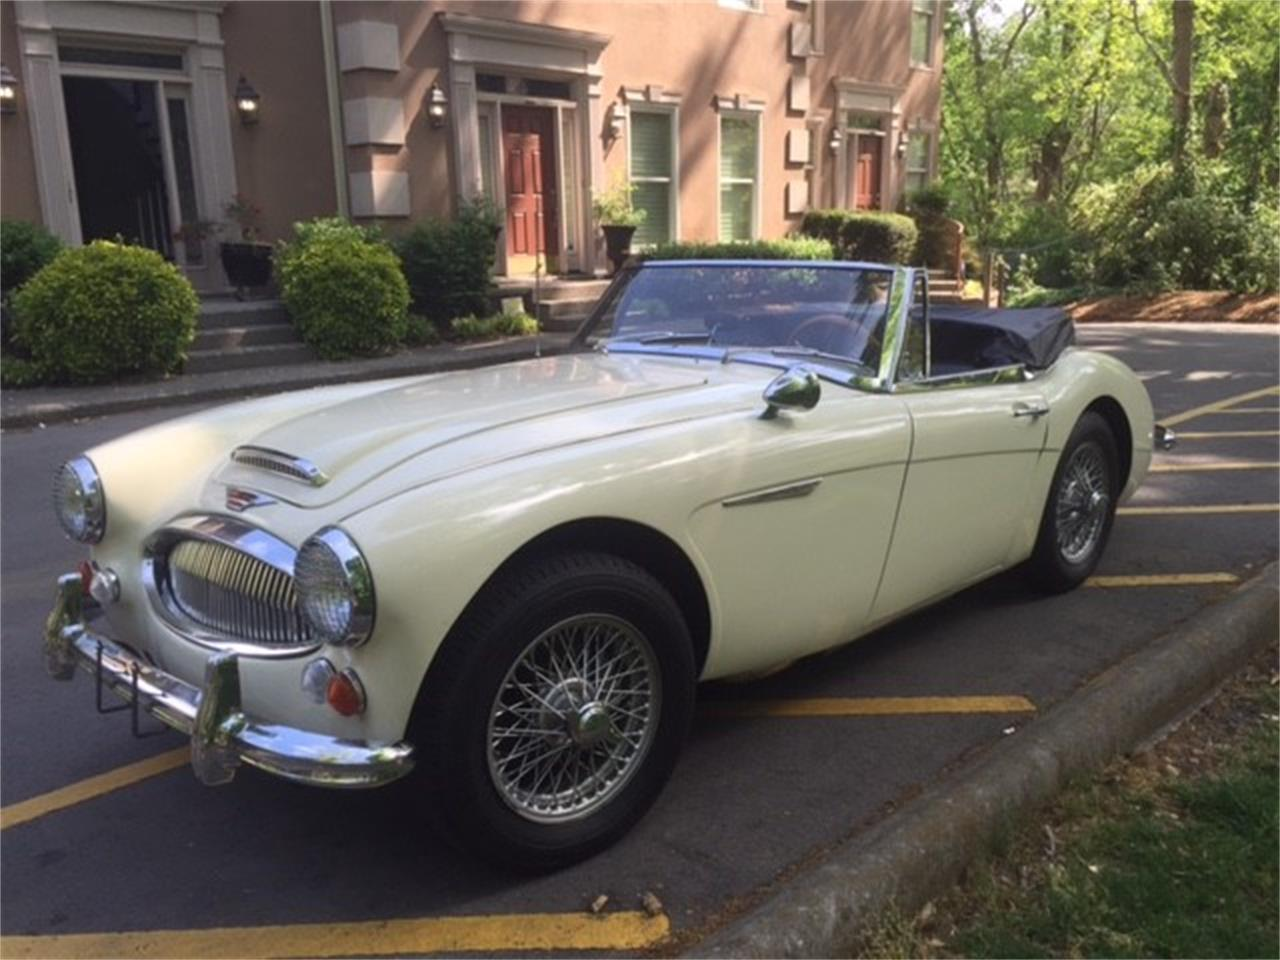 Large Picture of Classic '67 Austin-Healey 3000 Mark III located in Tennessee - $52,000.00 - L3I0